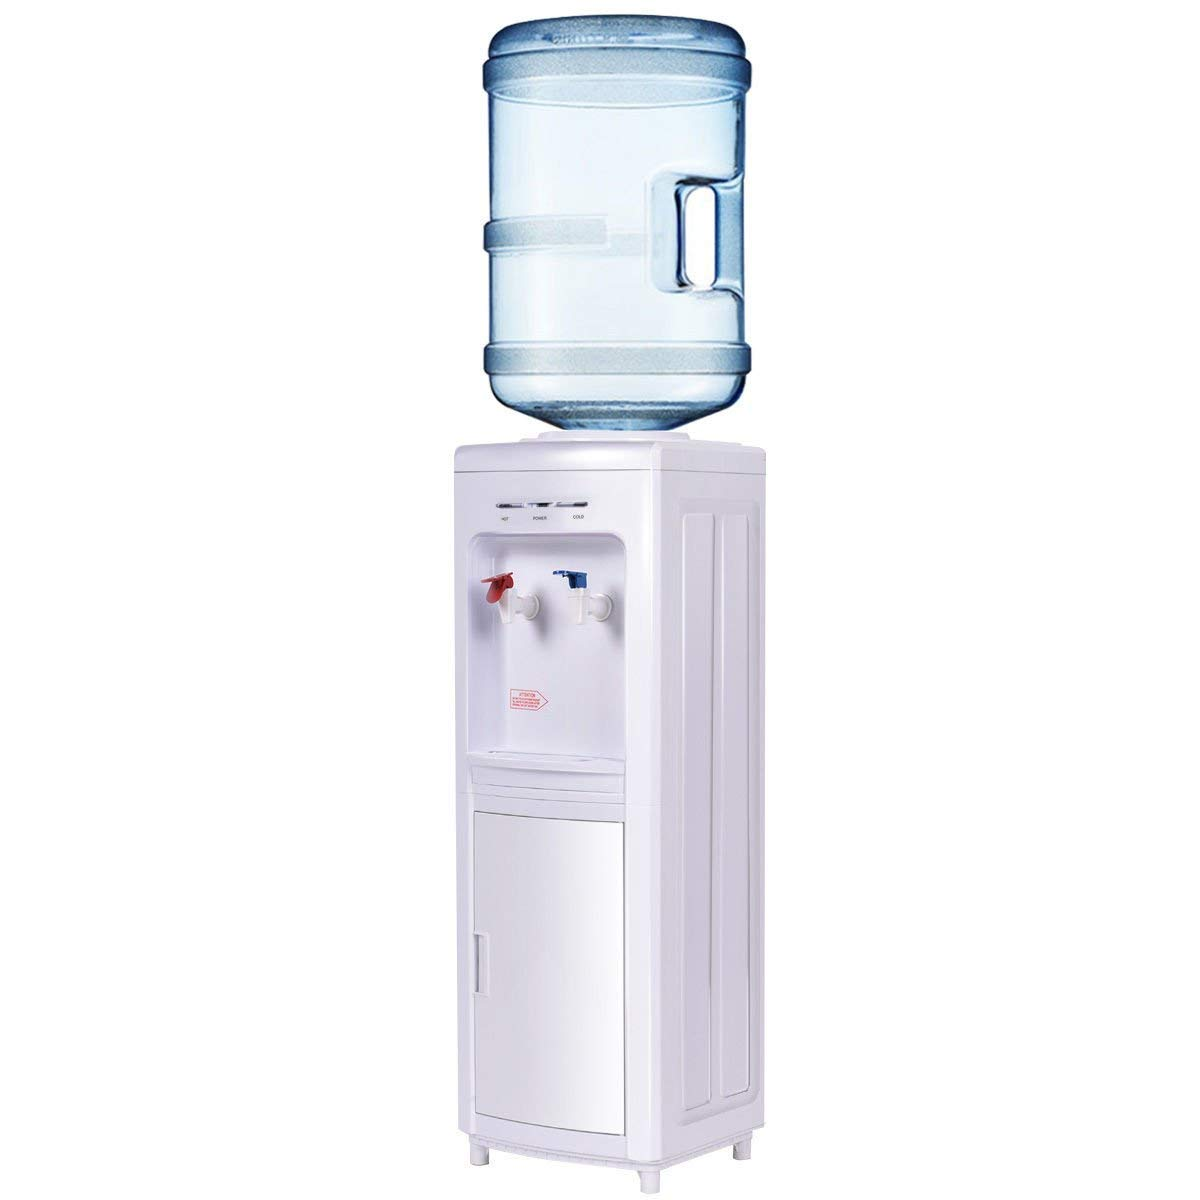 5 Gallon Electric Water Cooler Dispenser Stand Perfect For Home And Office Use Primo Machine Cold And Hot Bottle Load Digital Screen Low Noise Compressor Hot Water Child Lock Included Does Not Apply